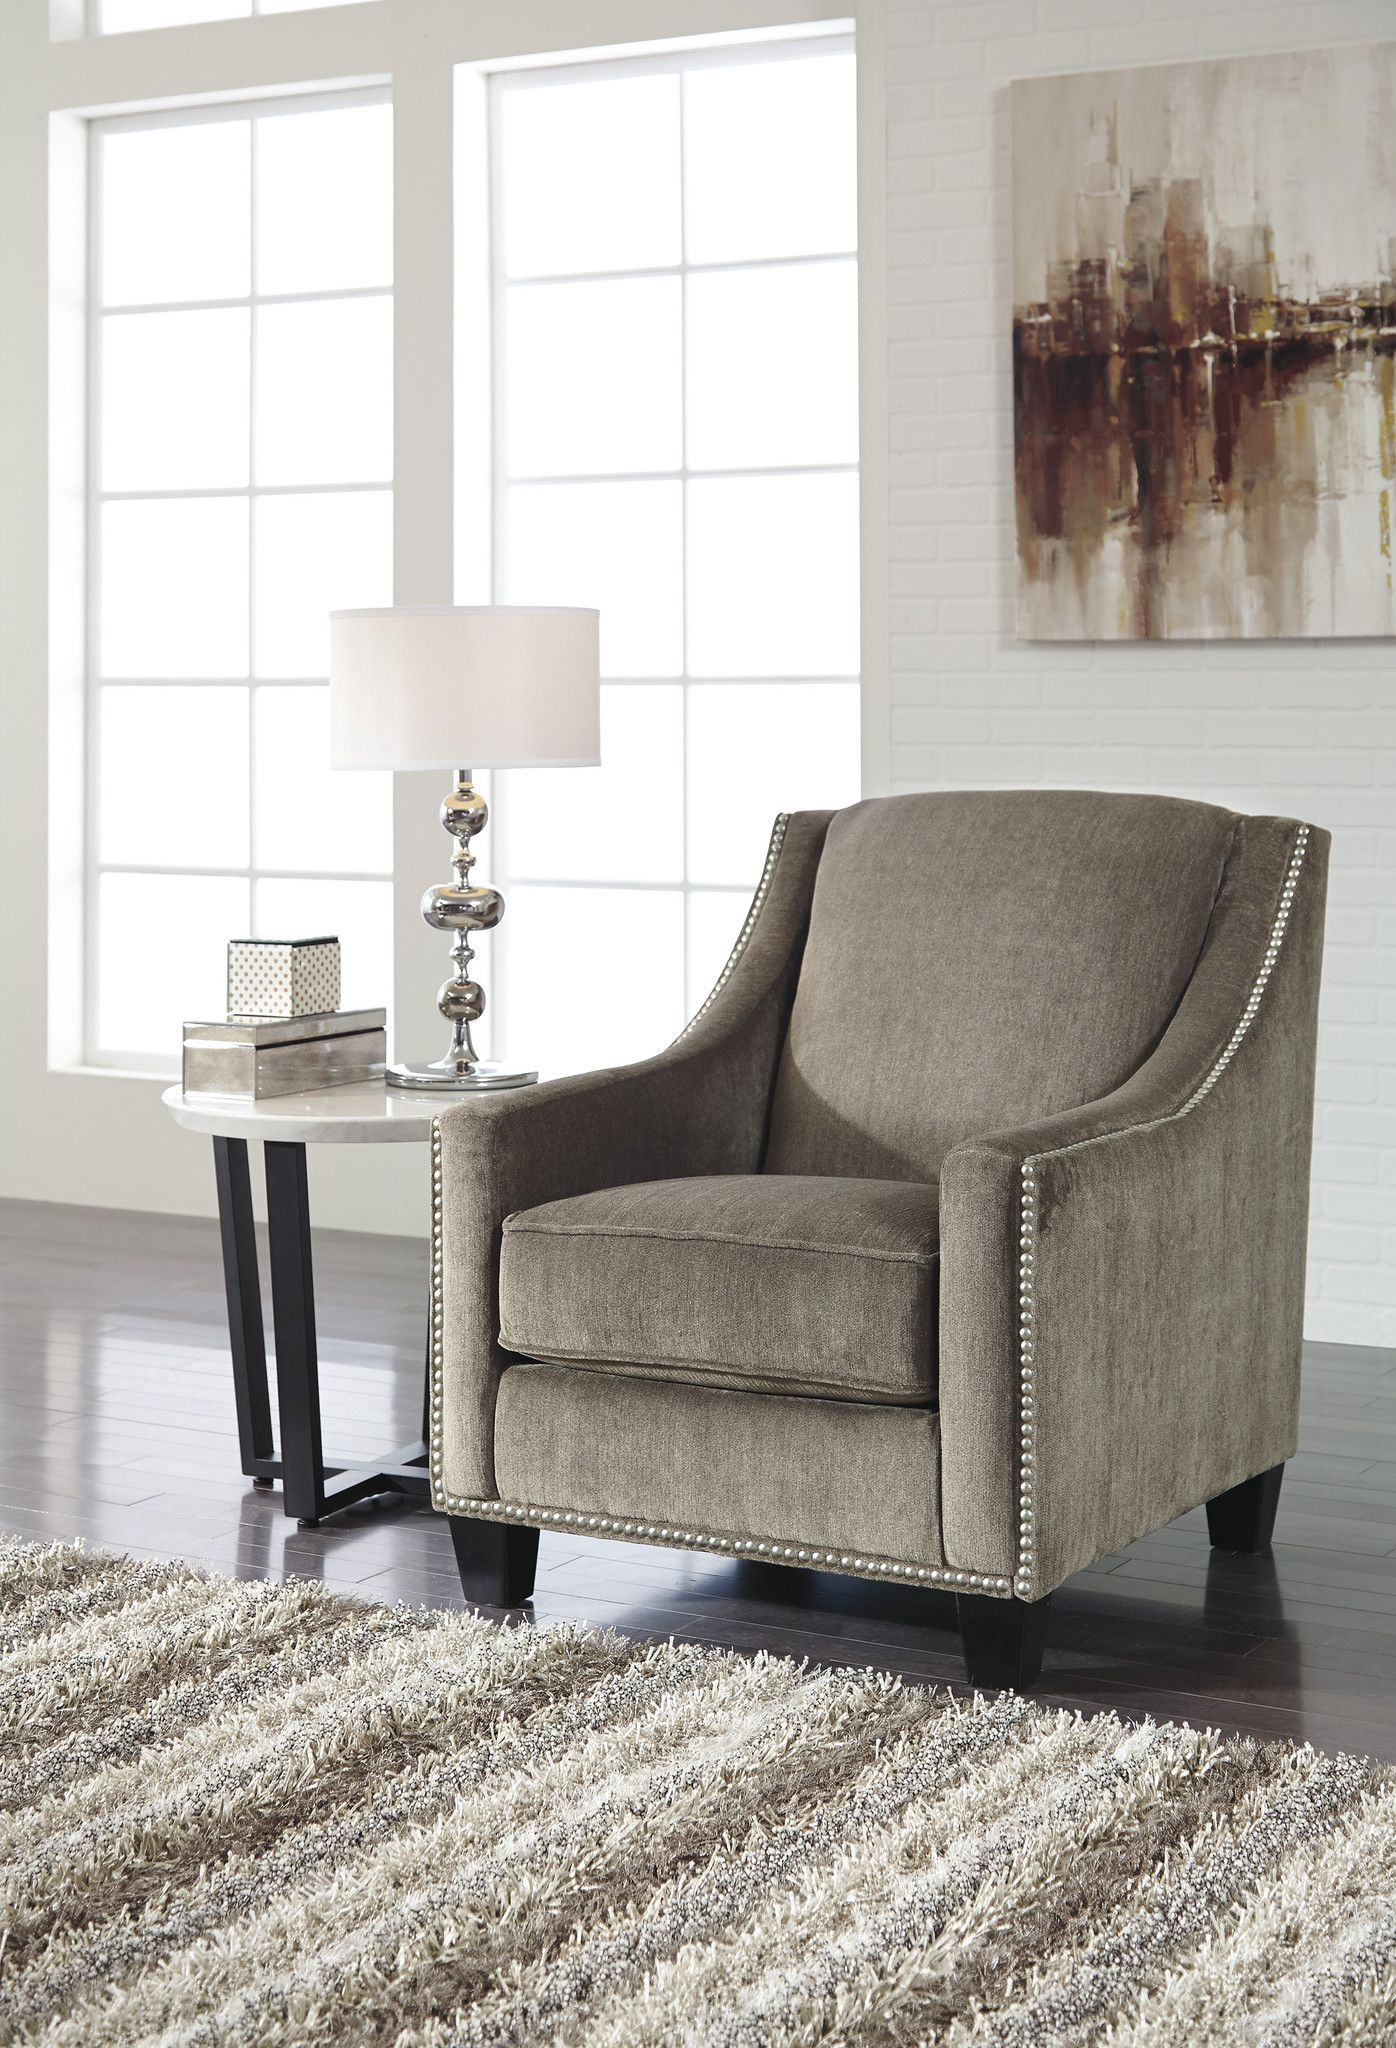 The Donnell Accent Chair By Ashley Furniture 2680021 With Images Ashley Furniture Furniture Cheap Office Chairs